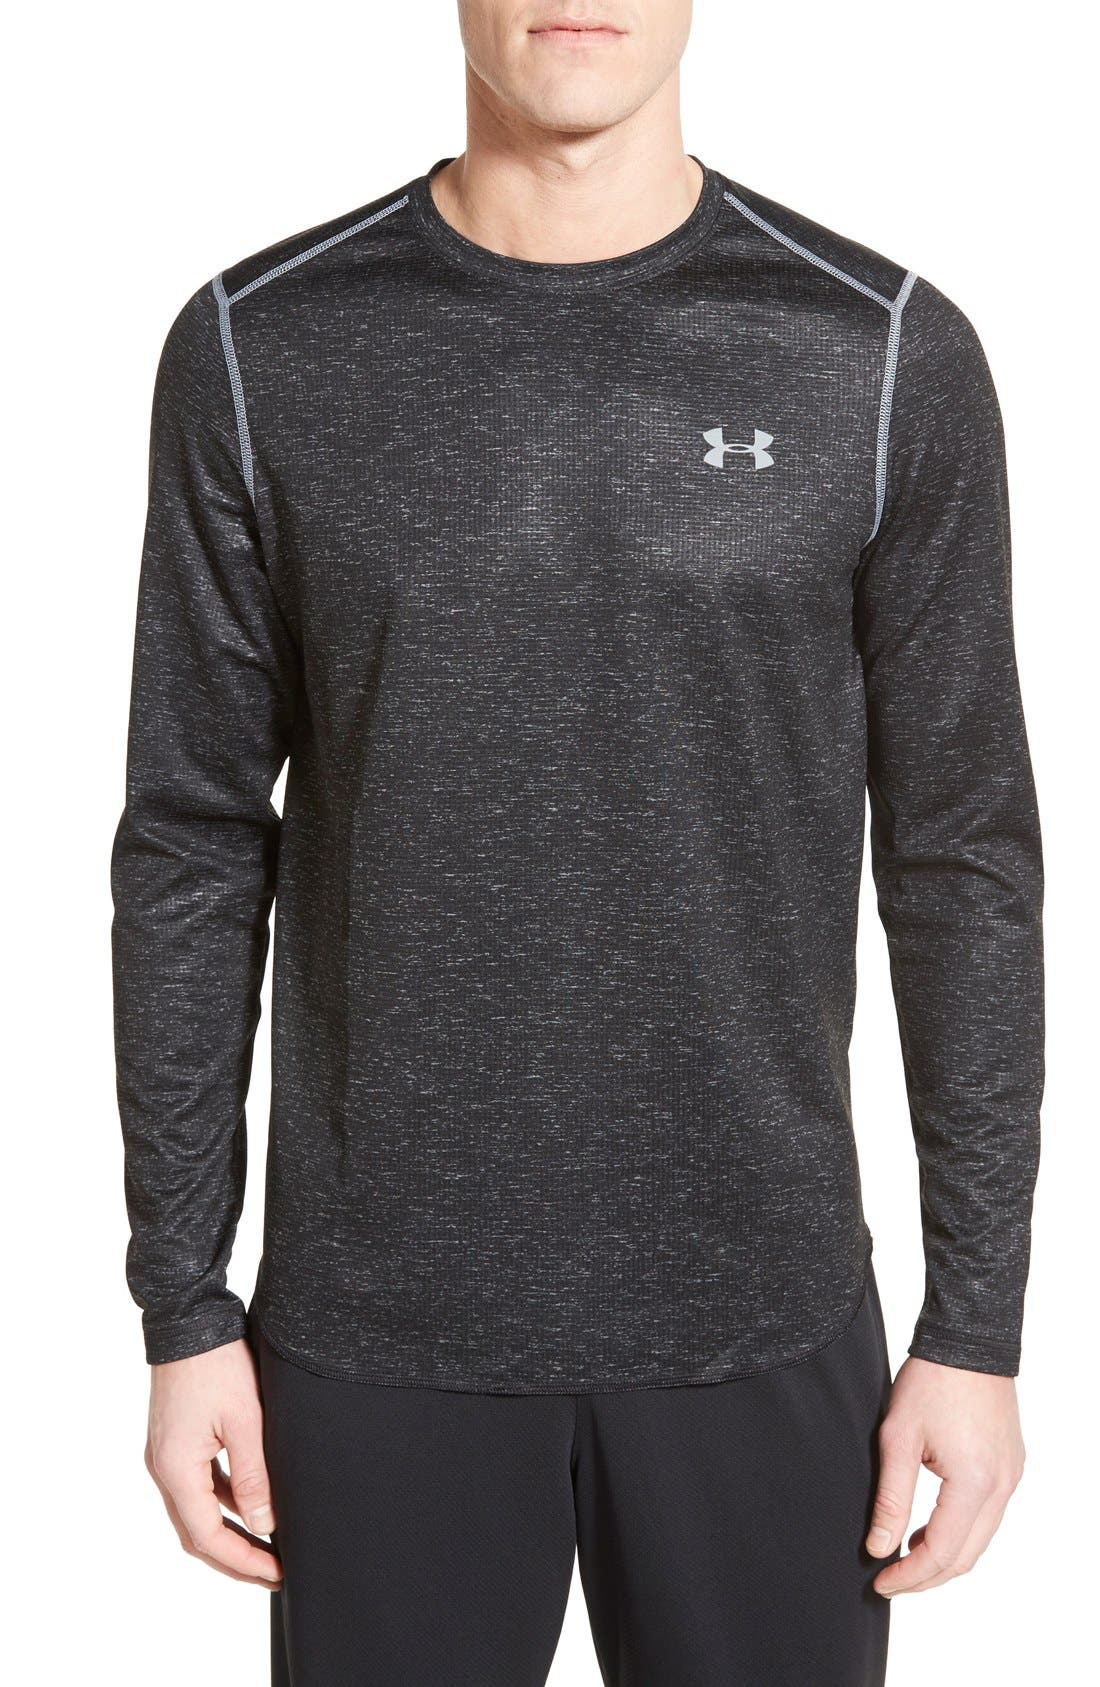 Alternate Image 1 Selected - Under Armour Tech™ Long Sleeve Waffle Knit T-Shirt